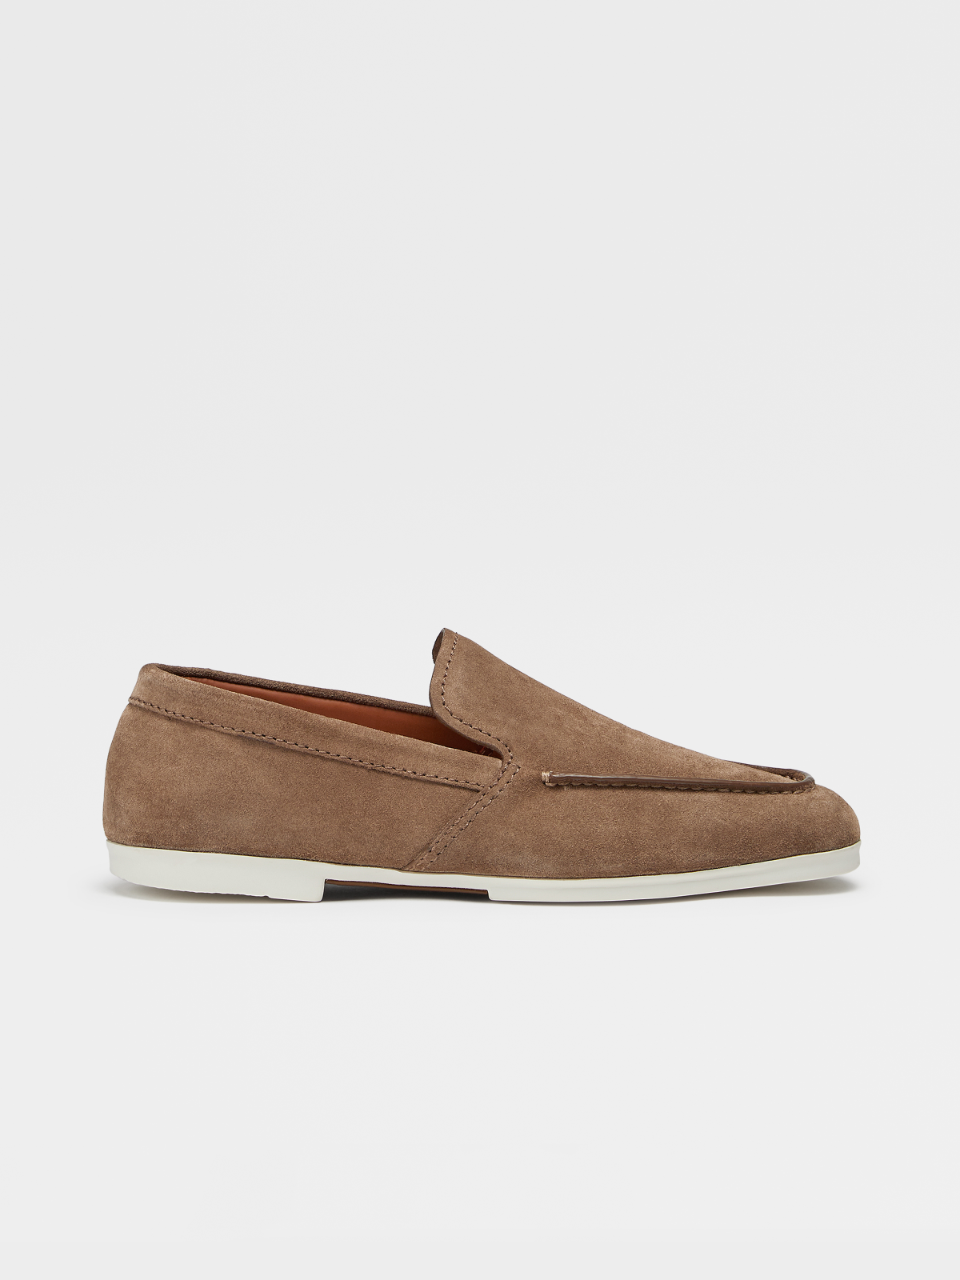 Suede Bellagio Loafer